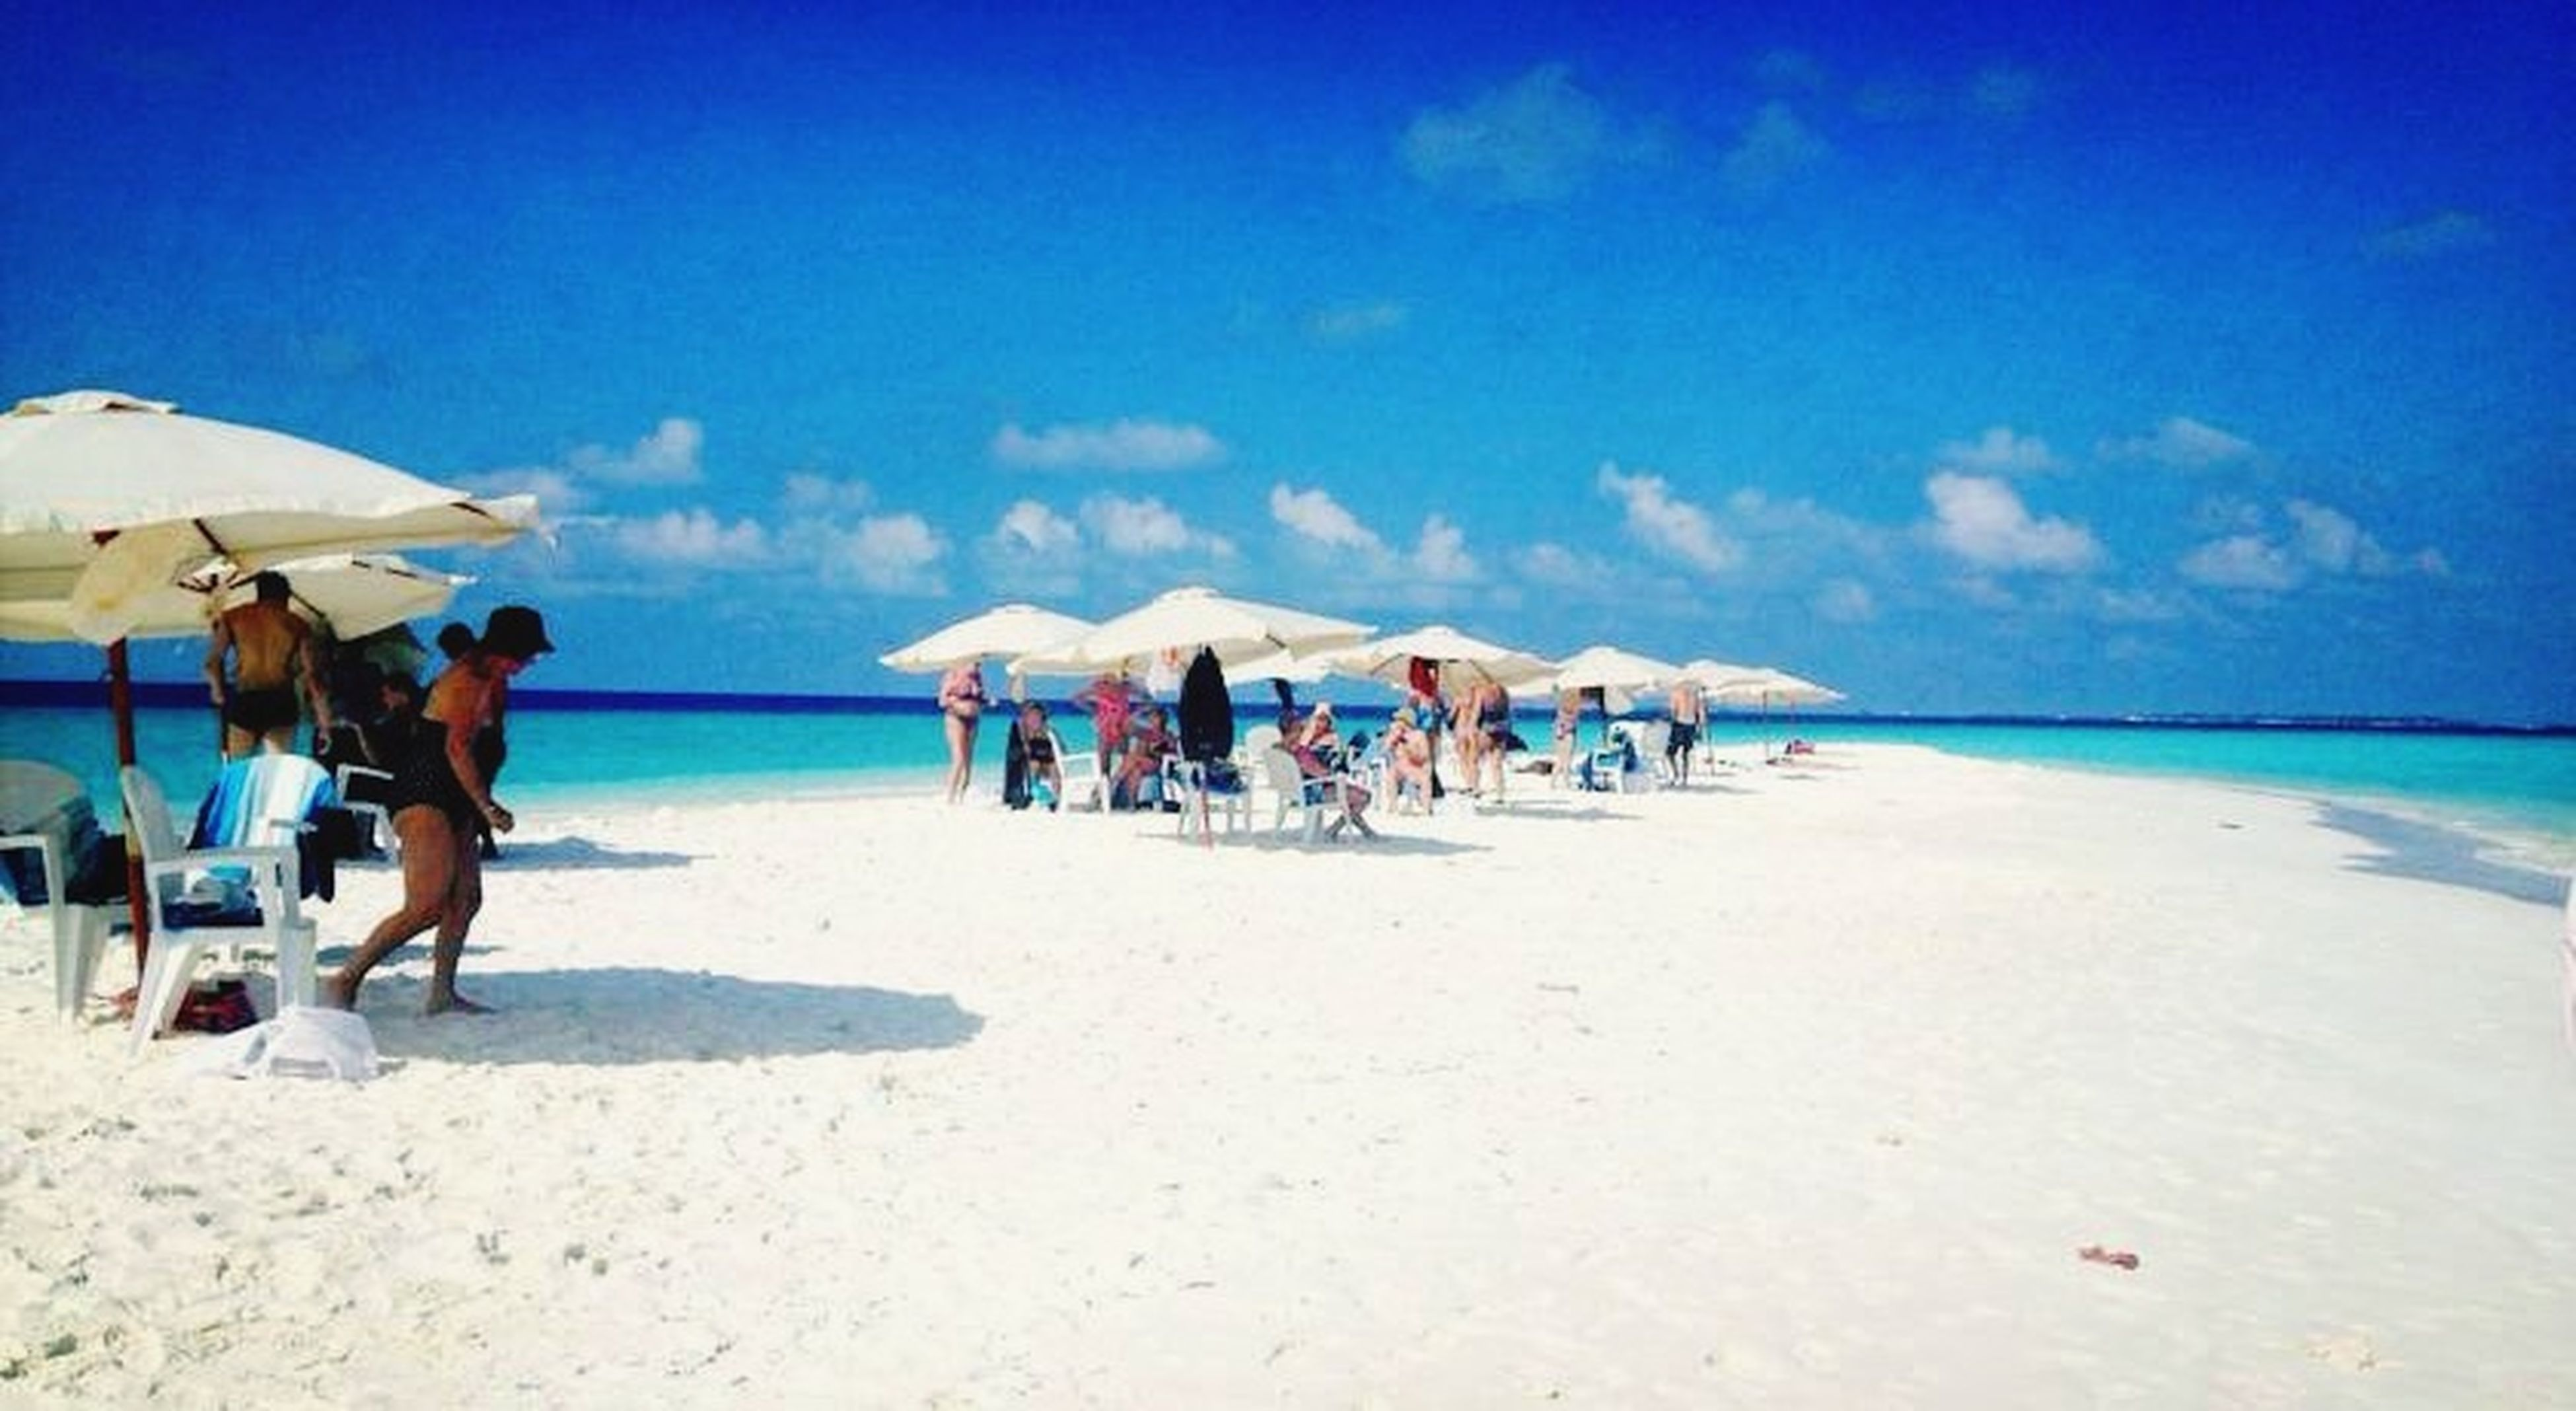 Sand bank trip ( half day or full day ) incluide with bbq lunch ... Snorkling ... www.ciarastartravel.com